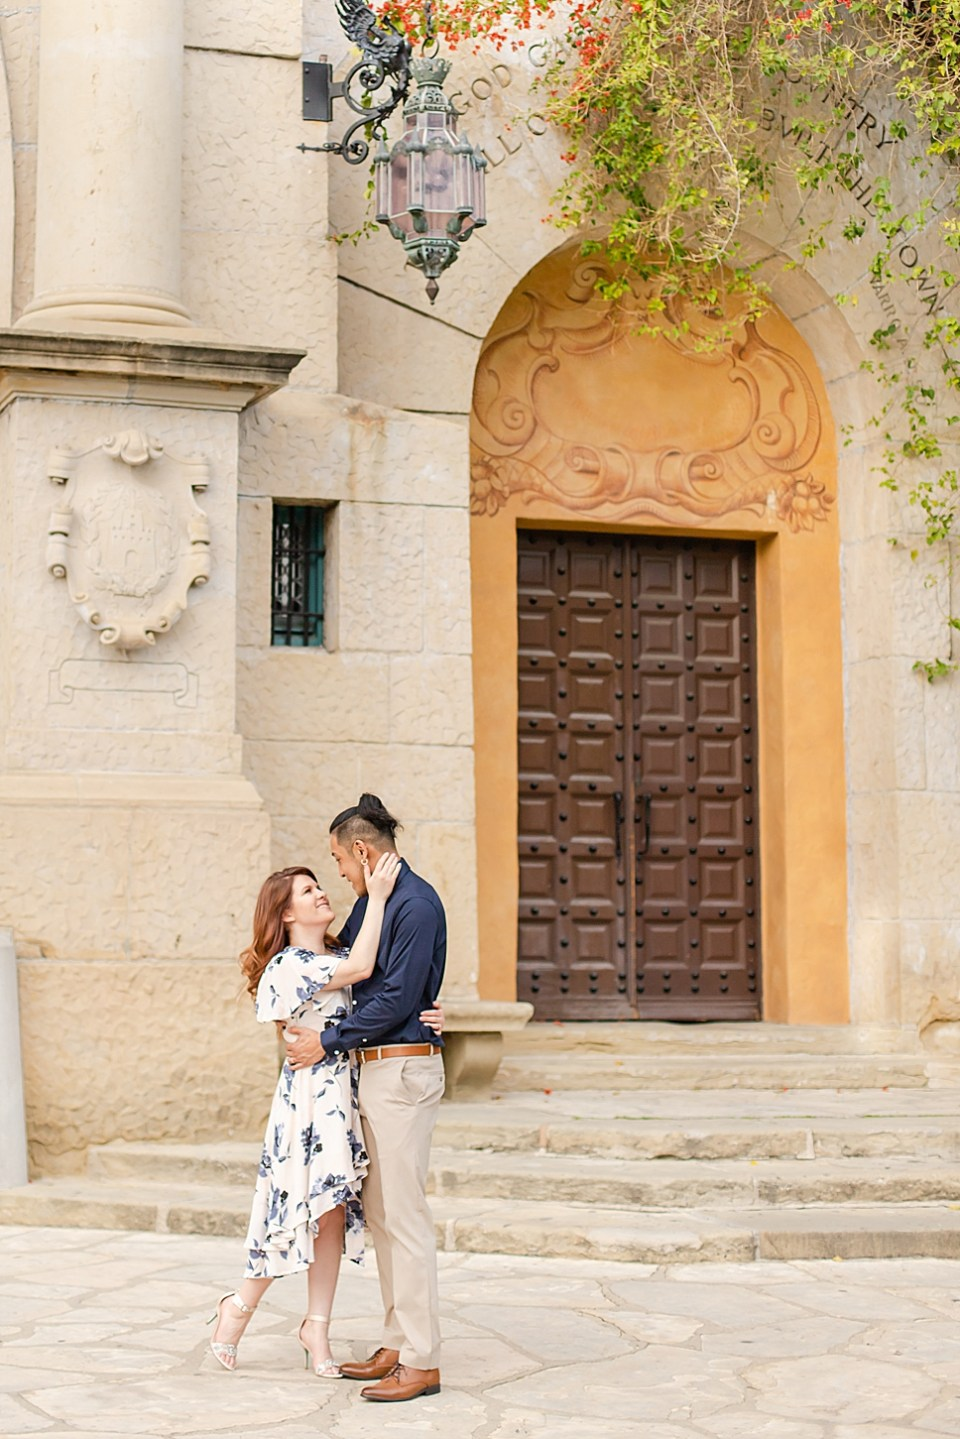 The bride and groom to be standing in front of the Santa Barbara Courthouse with a large brown door and lantern with bougainvillea hanging down.